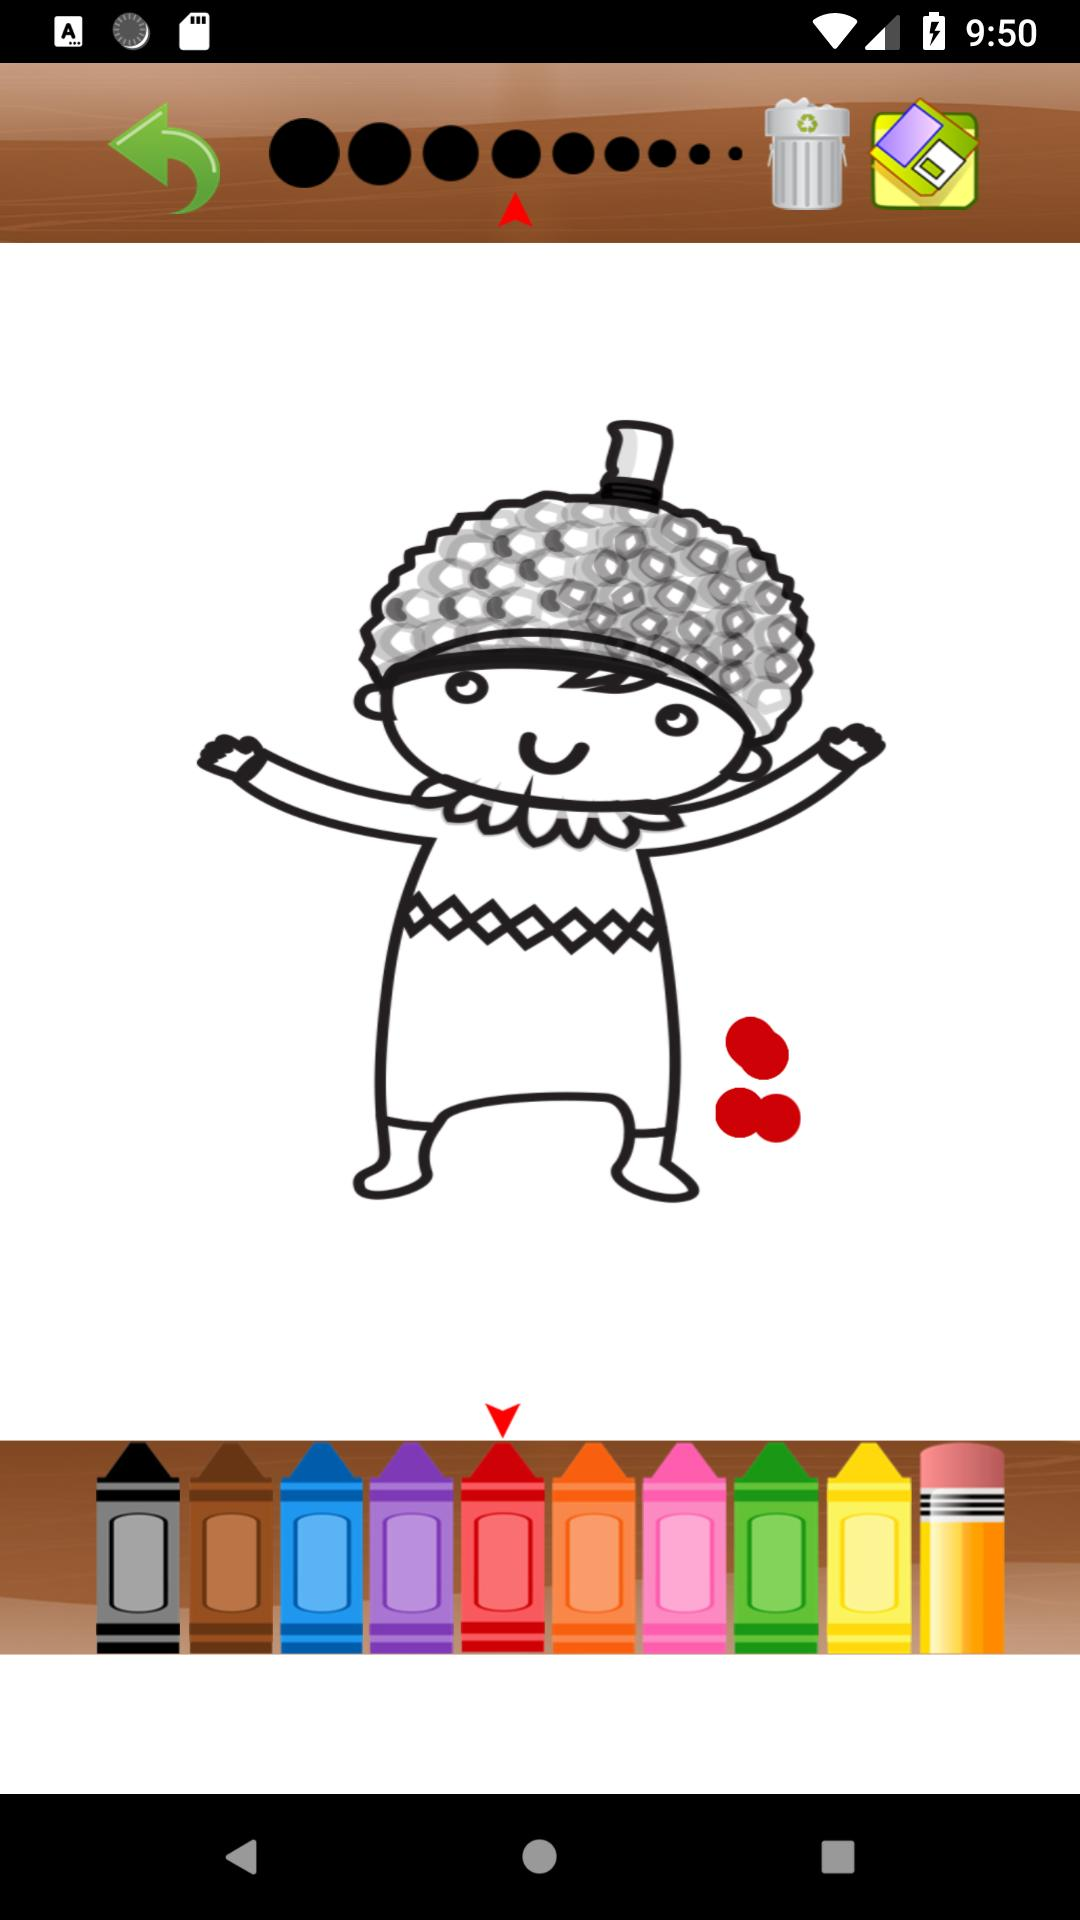 1080+ Download Gallery Coloring Book And Decor Mod Apk Picture HD